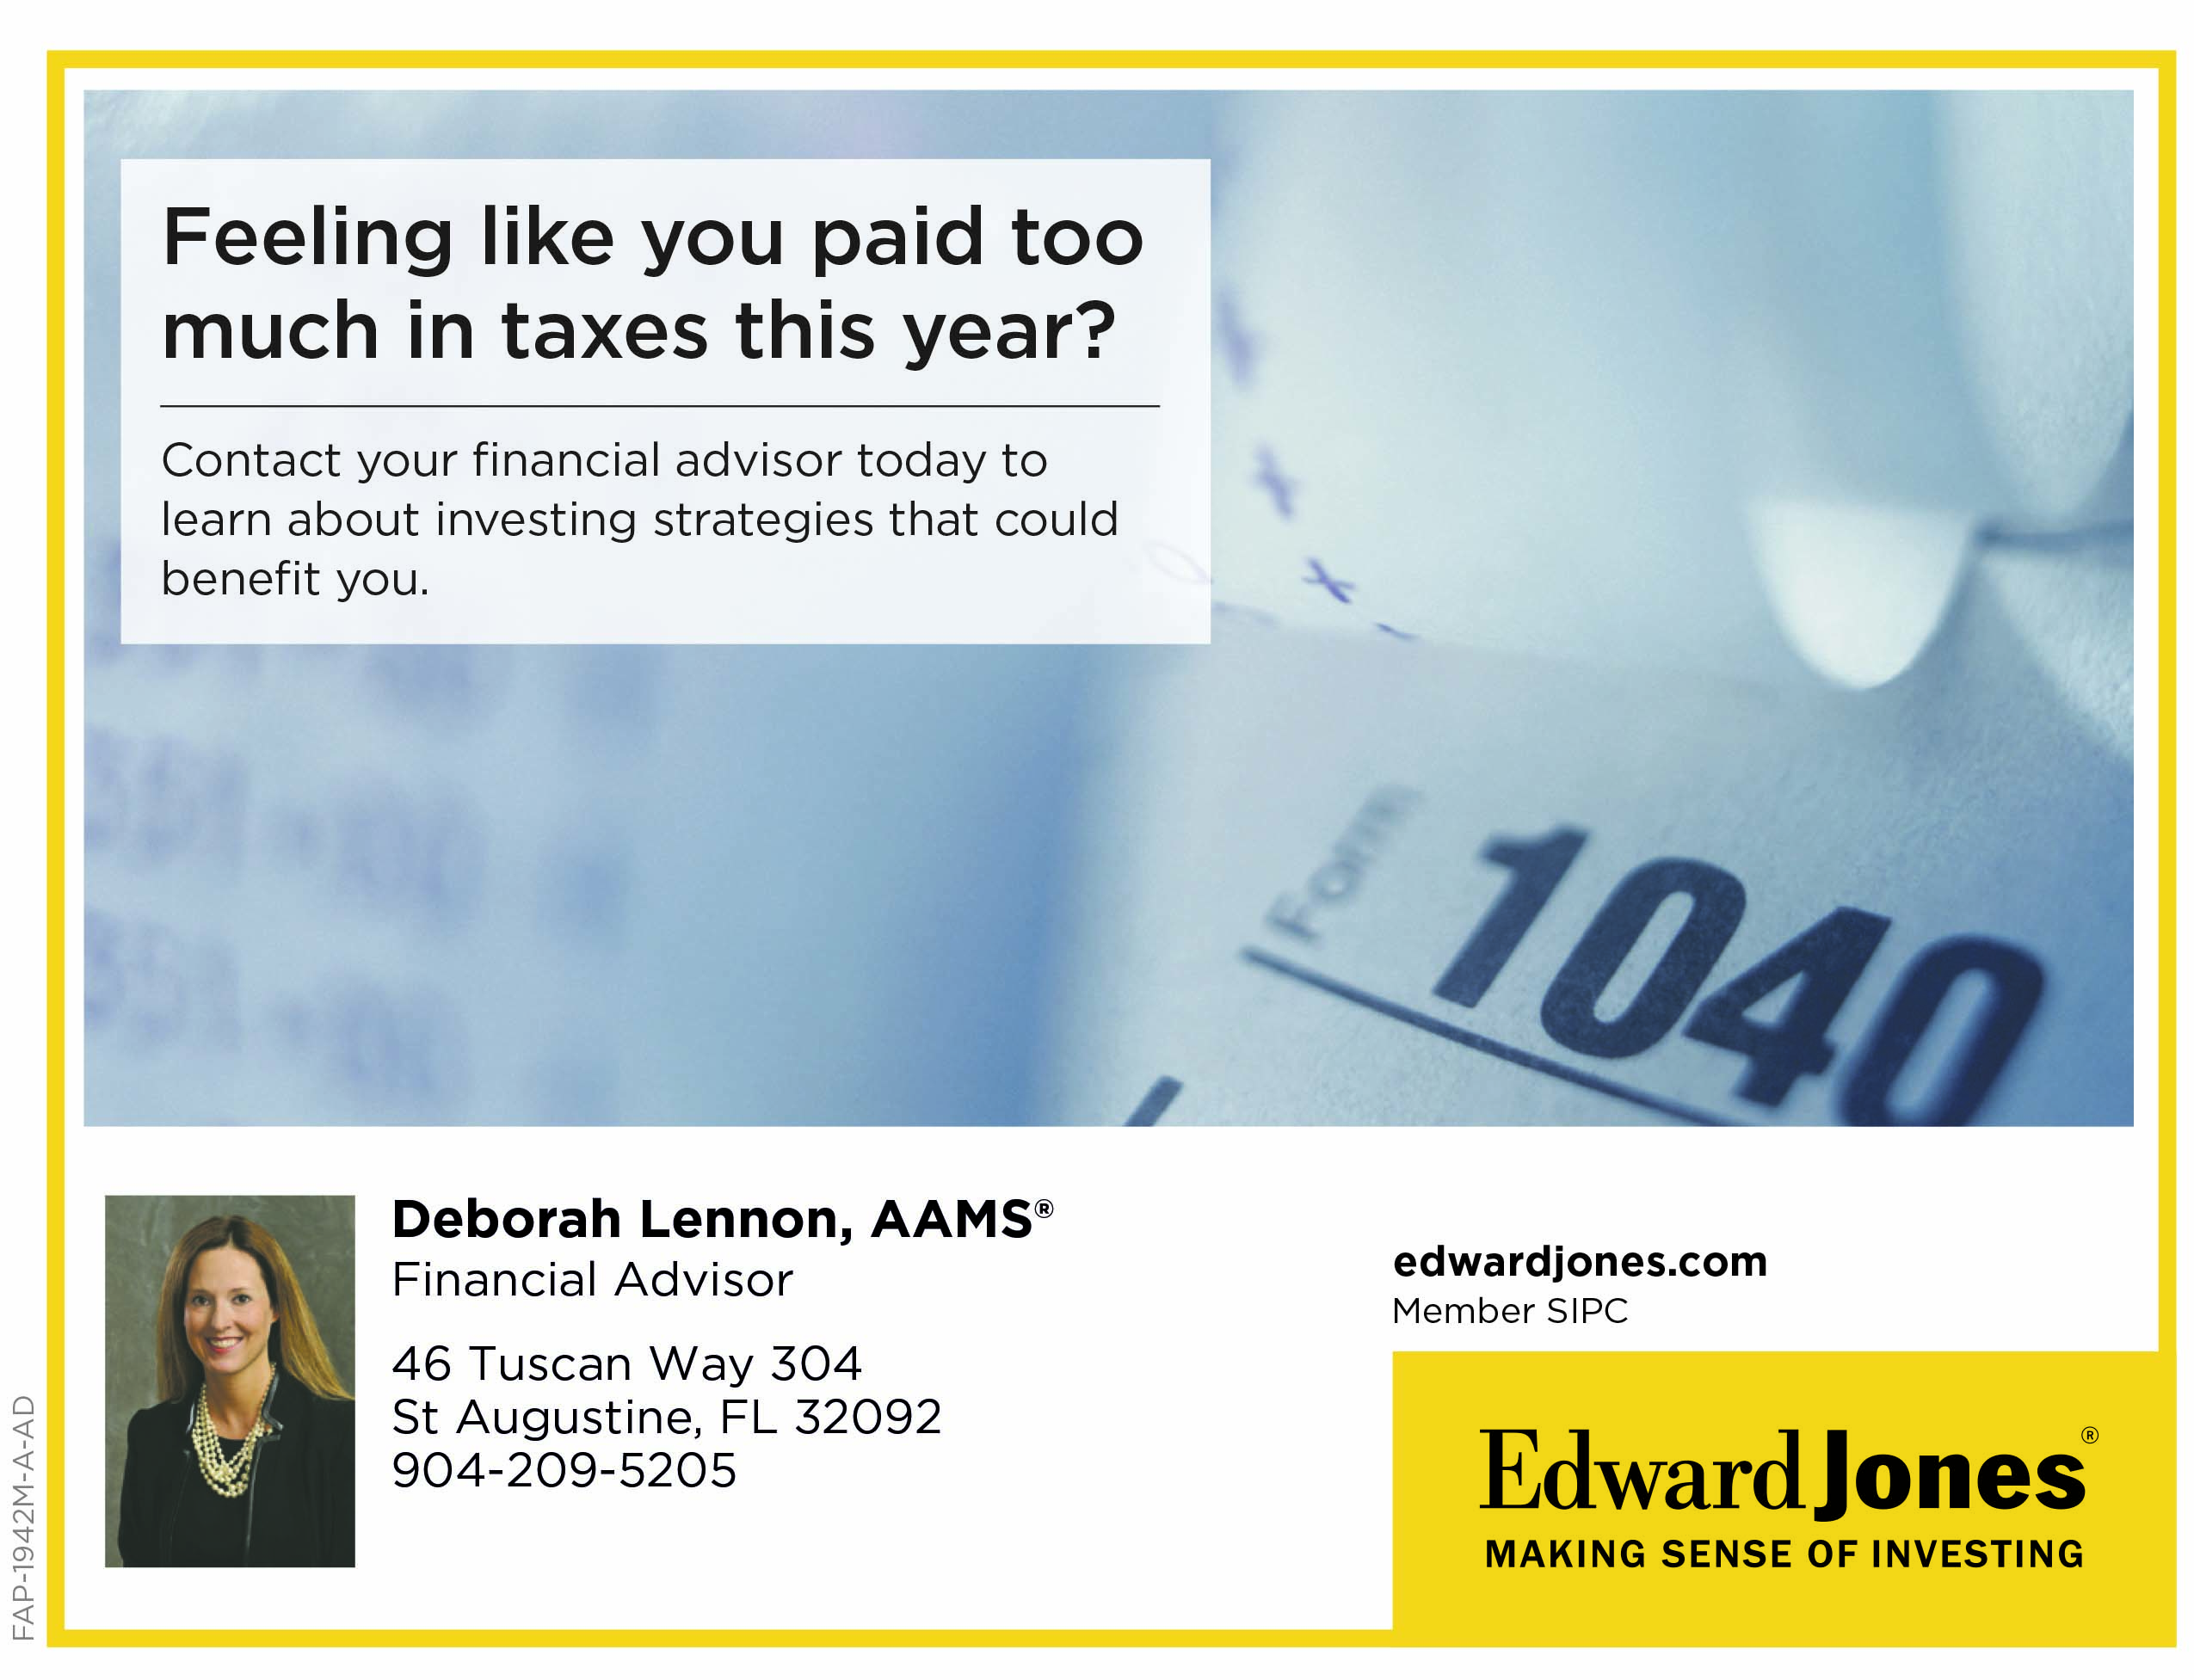 Feeling like you paid too much in taxes this year? Contact Deborah Lennon, AAMS. Edward Jones Financial advisor